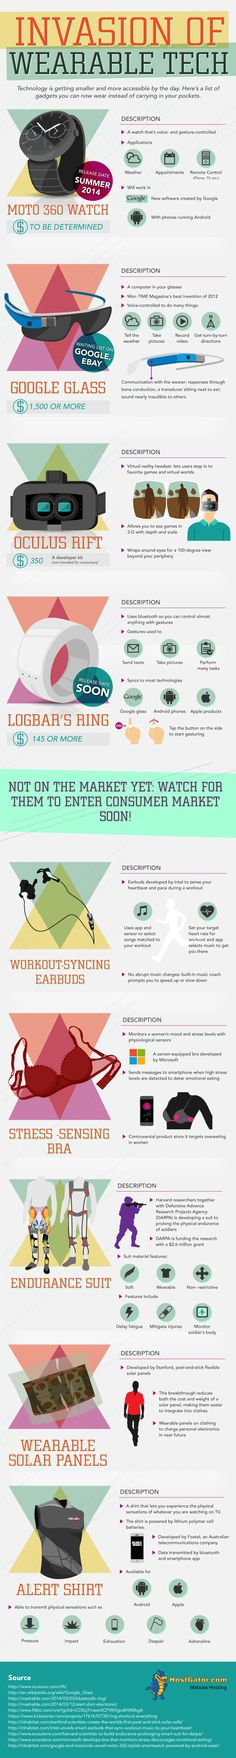 Invasion Of Wearable Tech [Wearable Electronics: http://futuristicnews.com/tag/wearable/ Smart Watches for Sale: http://futuristicshop.com/category/smart-watches-wearable-electronics/]